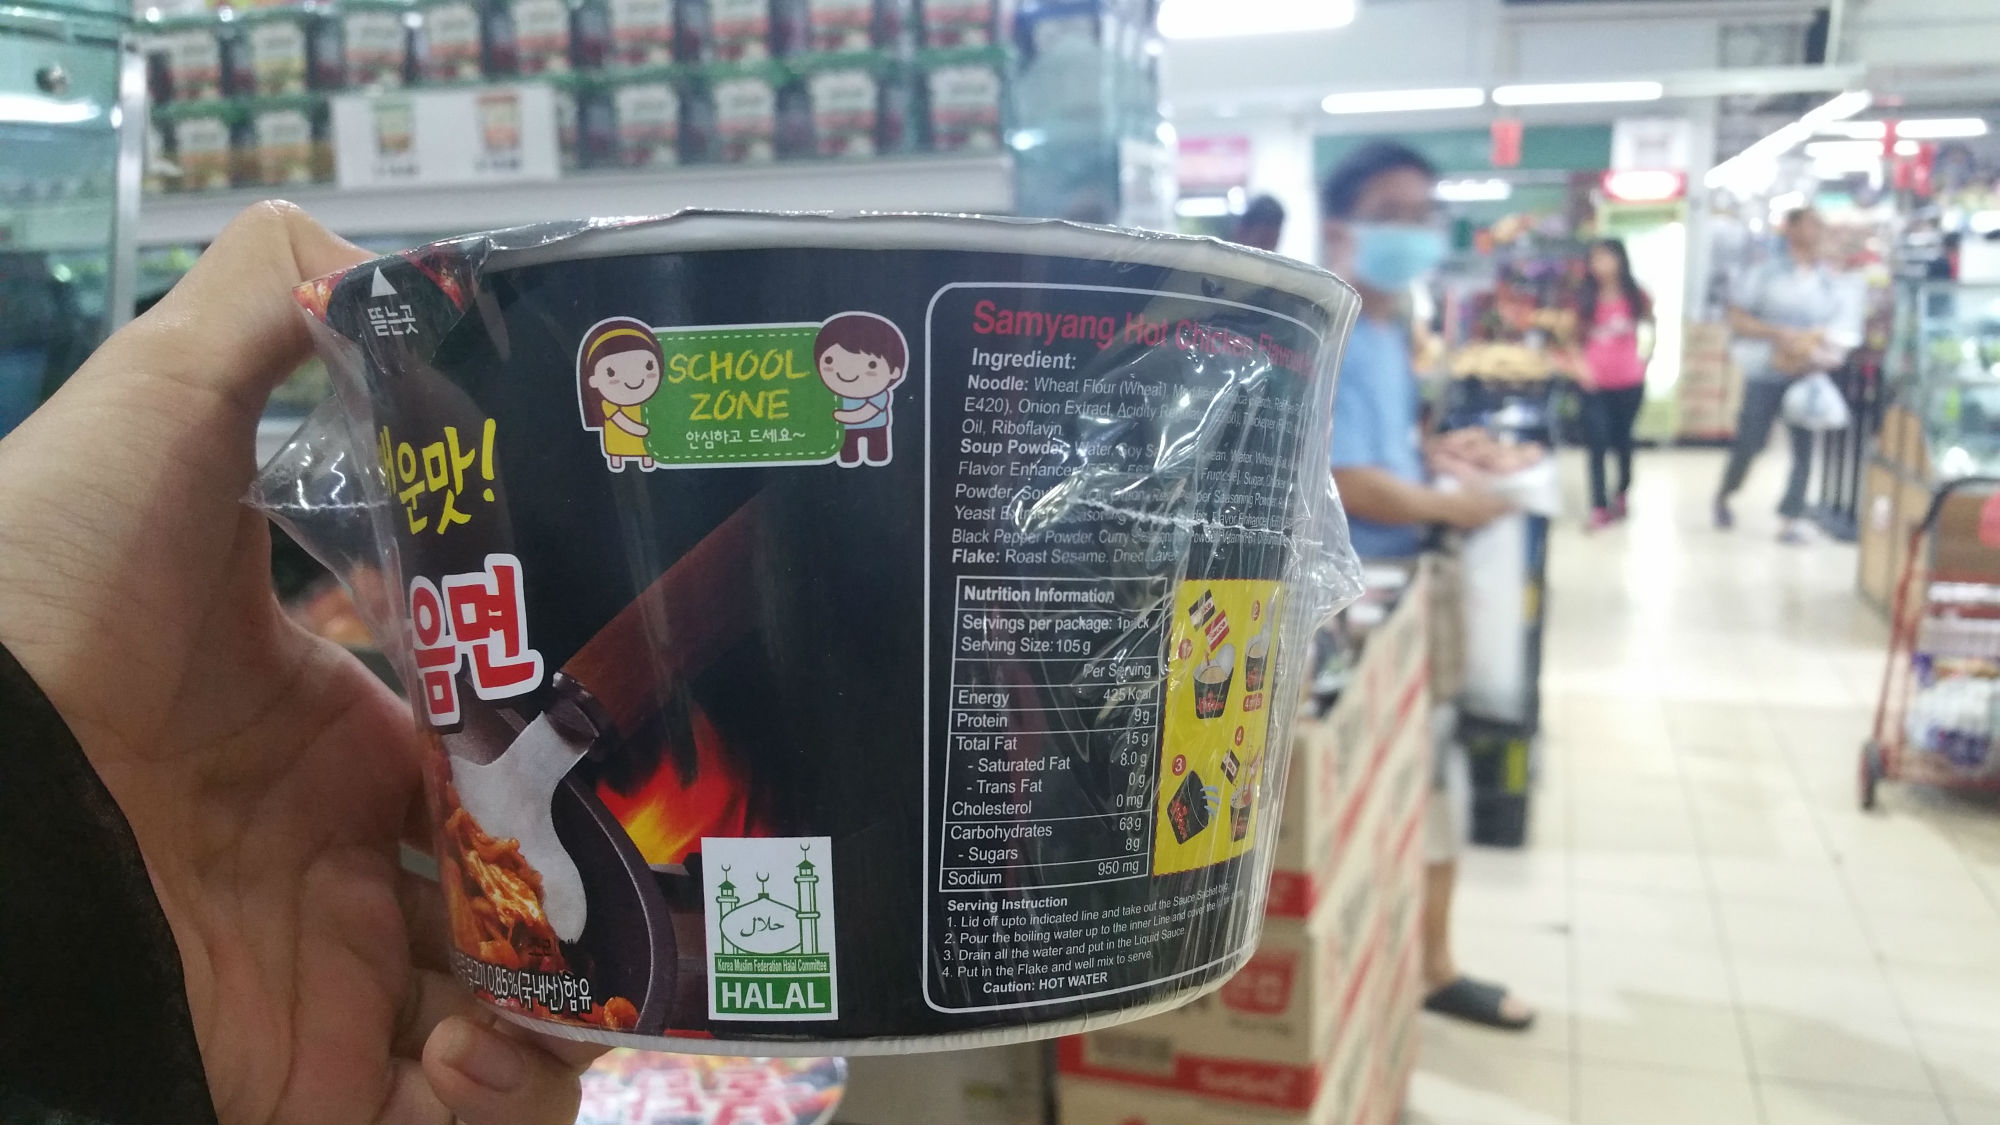 Samyang Fire Noodles in Singapore